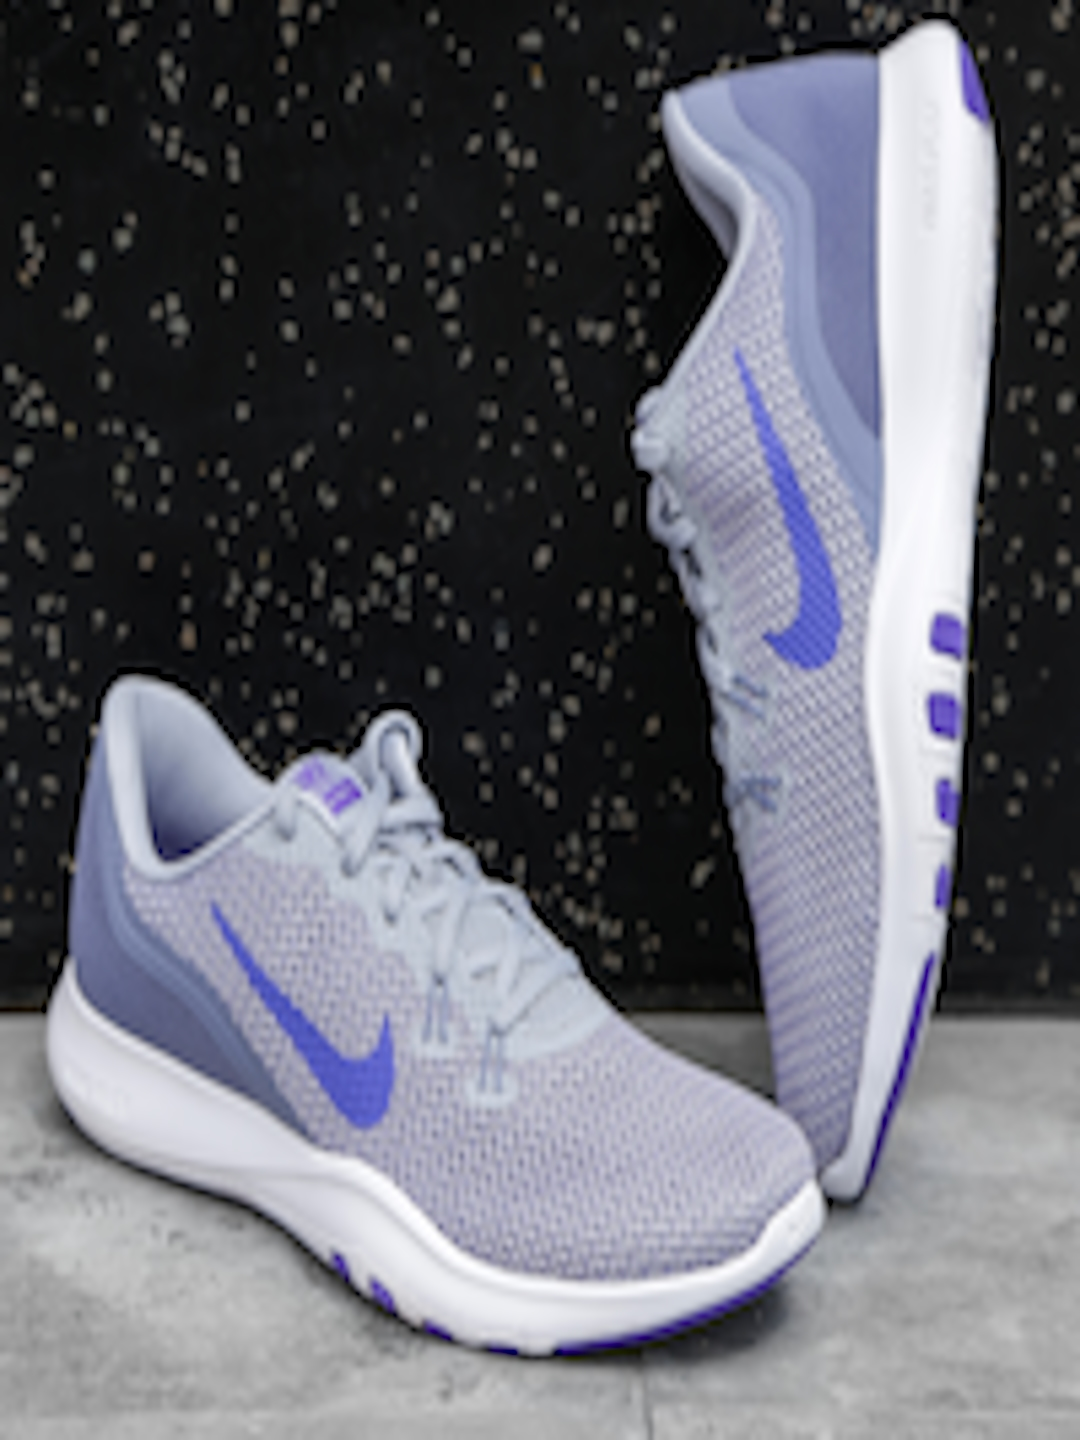 5a593f40d889 Buy Nike Women Grey FLEX TRAINER 7 Training Shoes - Sports Shoes for ...